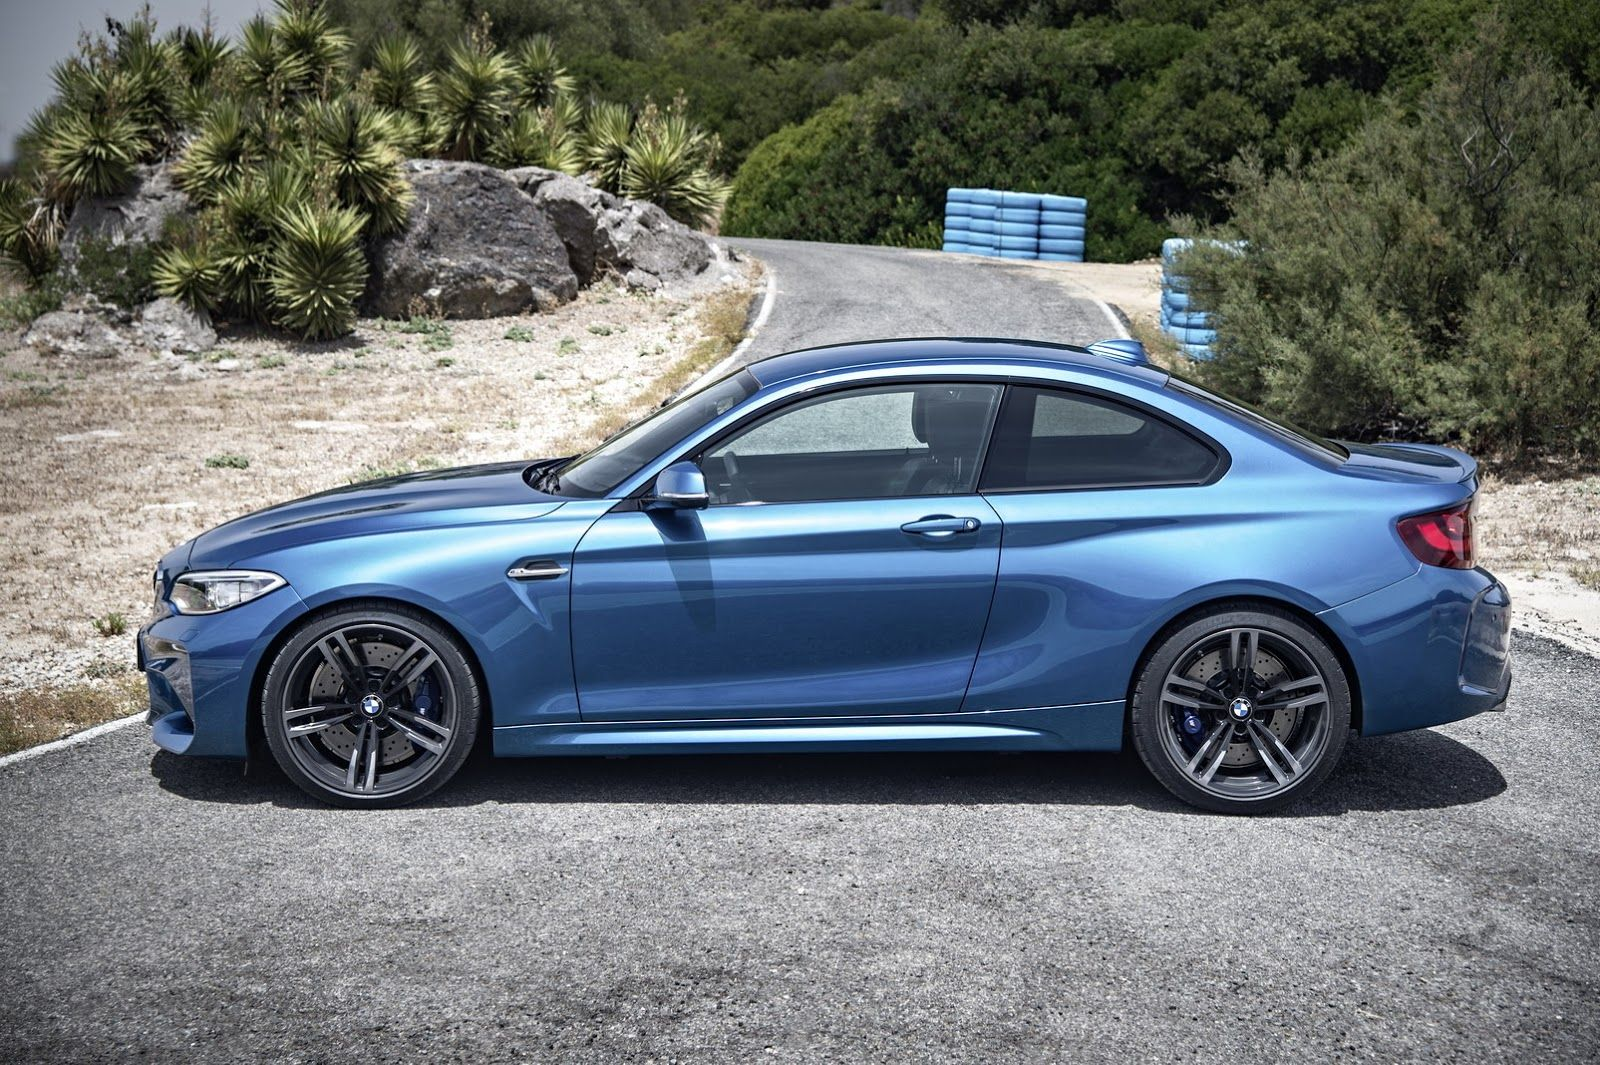 2016 Bmw M2 Coupe All The Official Details And 64 Photos Carscoops Bmw M2 Bmw Coupe Bmw